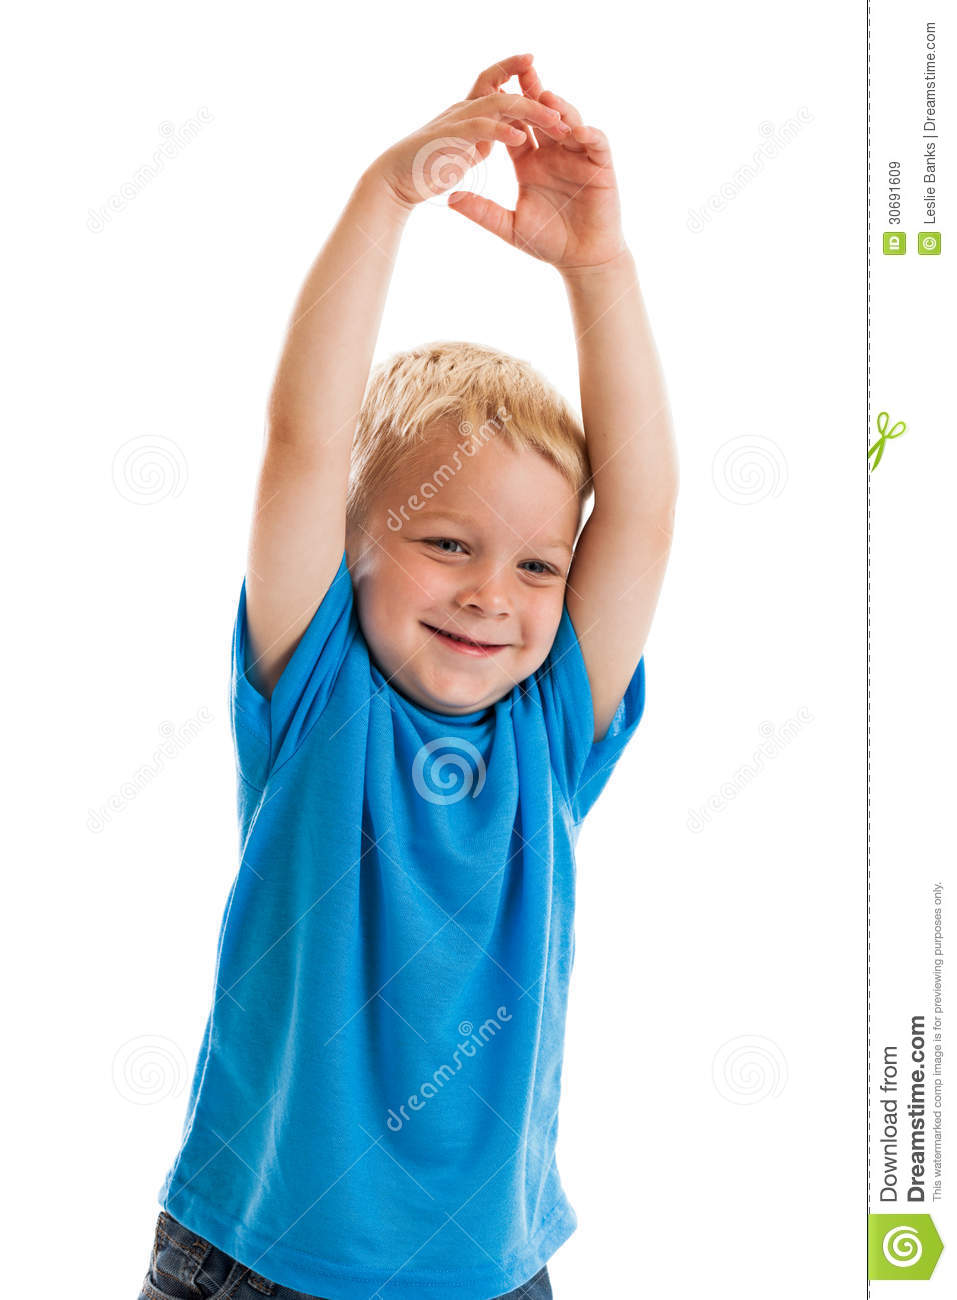 Child Raising Hands Royalty Free Stock Images - Image ... (957 x 1300 Pixel)